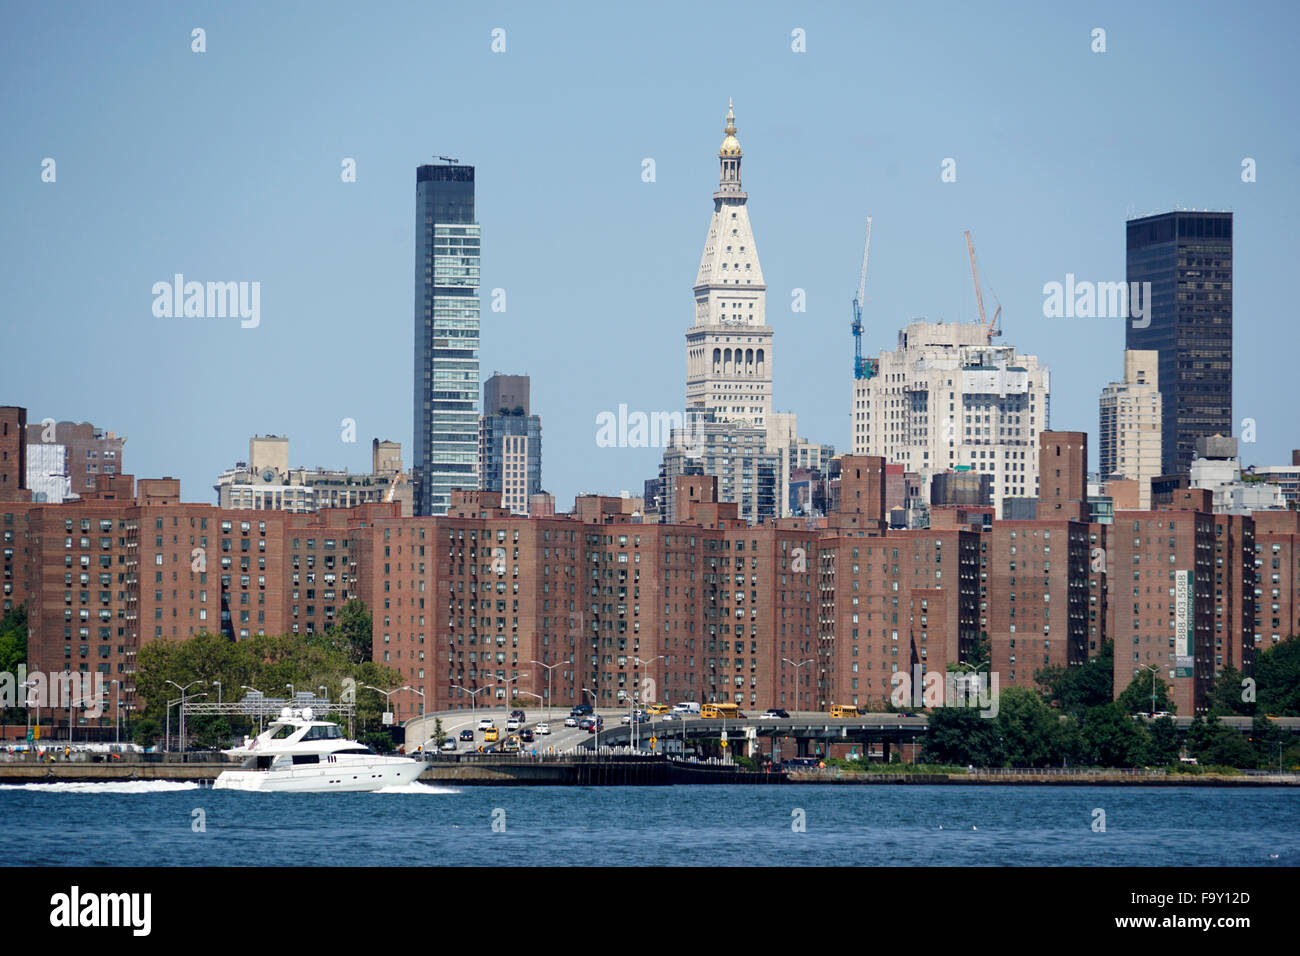 Day Time View Of Manhattan From Williamsburg Brooklyn With View Of